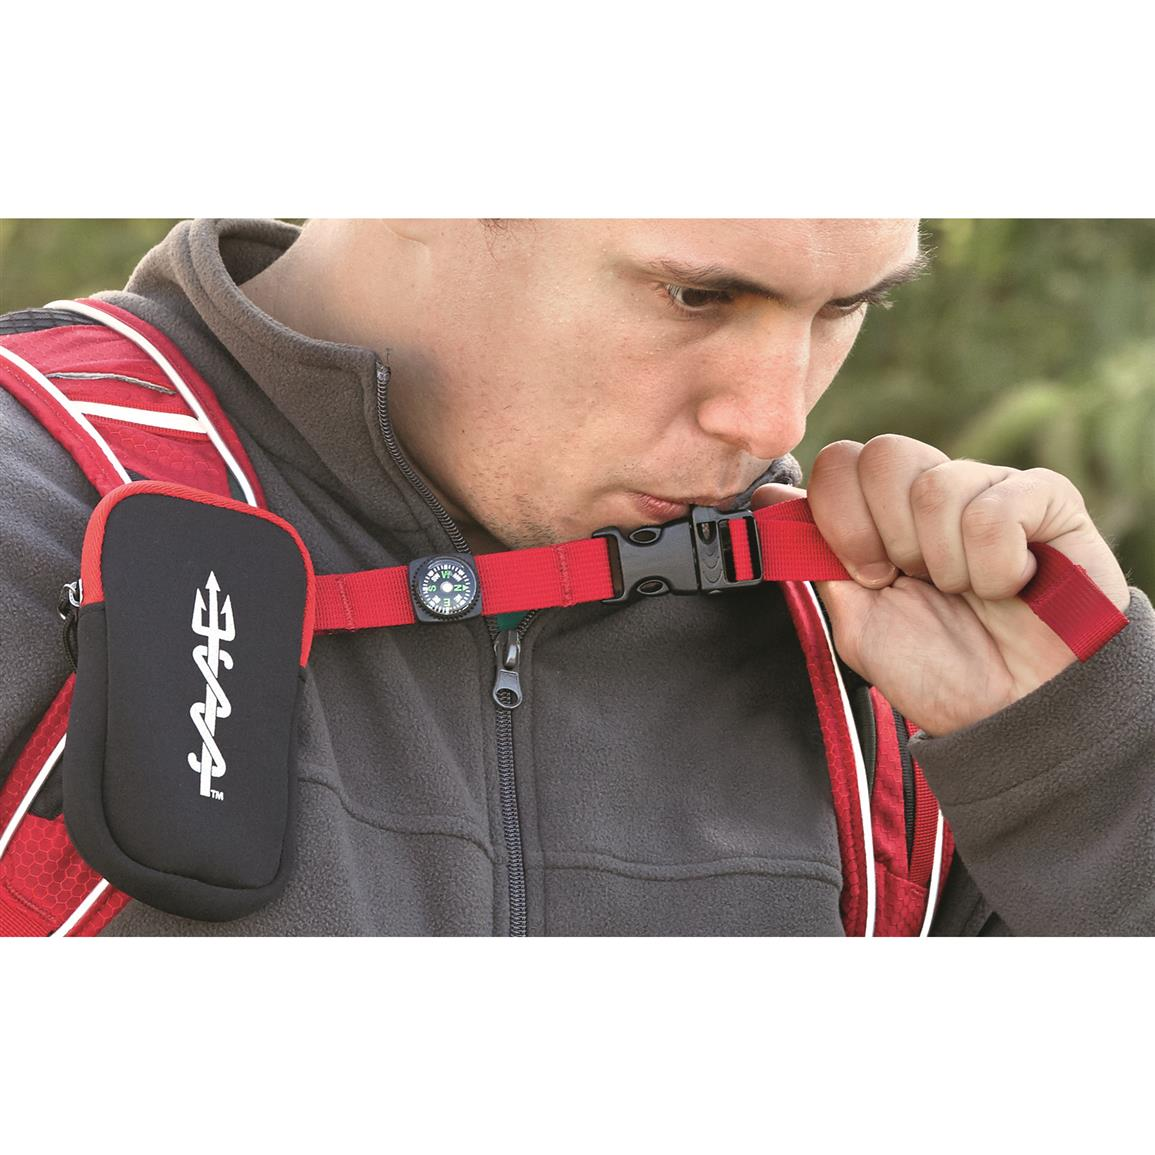 Emergency whistle and compass on chest strap